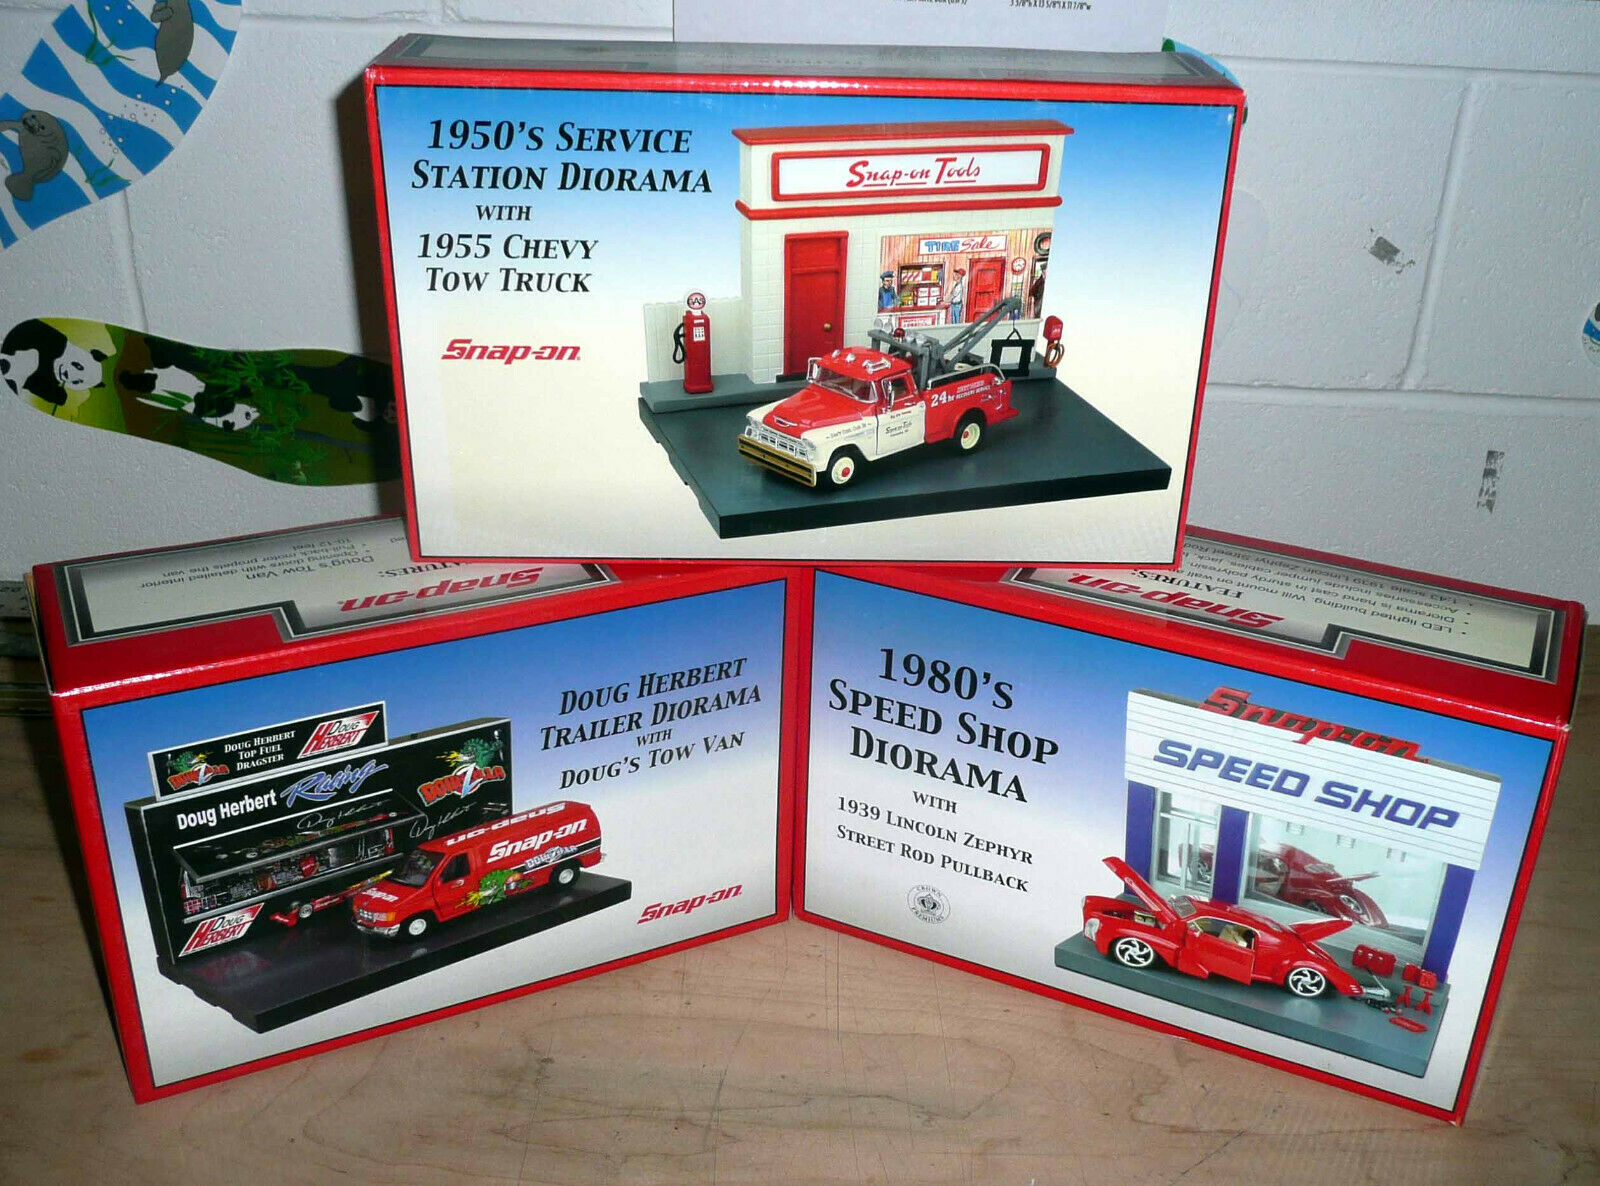 Lot of 3 Crown Premiums Snap-On Tools Tools Tools Diorama Sets  1 43 Scale  New  See Pics 4724f5